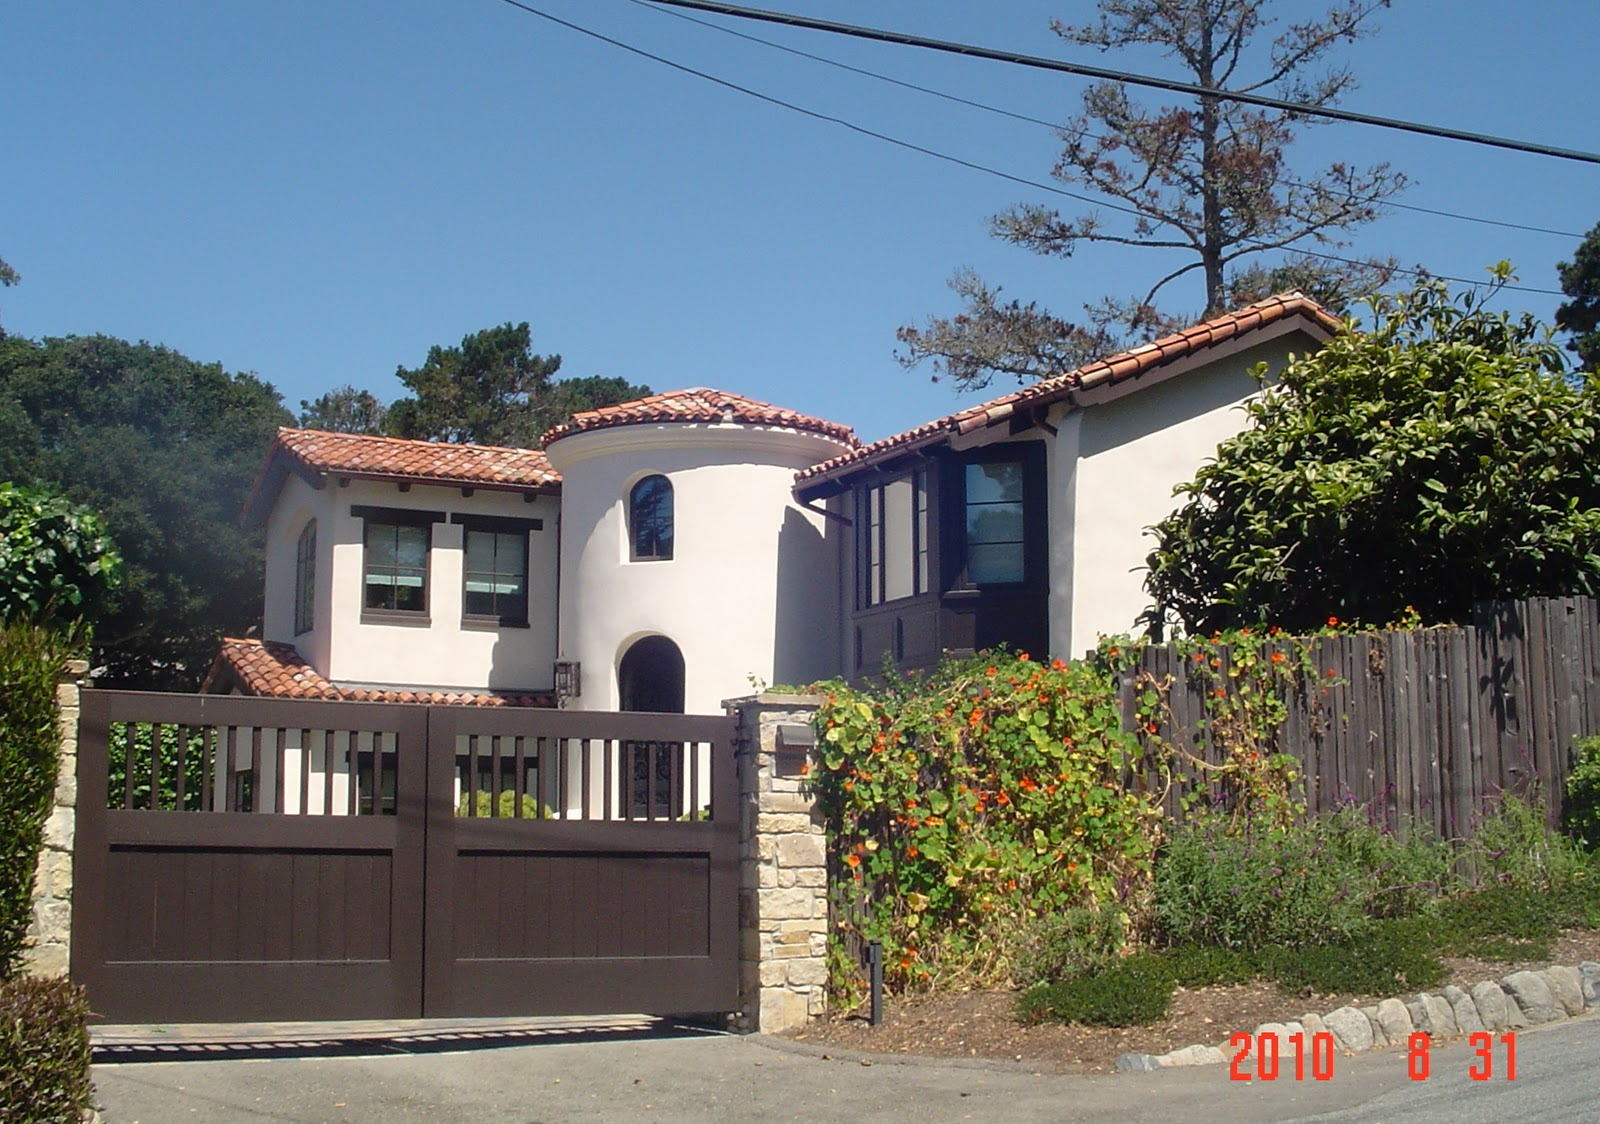 The CarmelbytheSea WATCHDOG CARMEL REGISTER OF HISTORIC RESOURCES